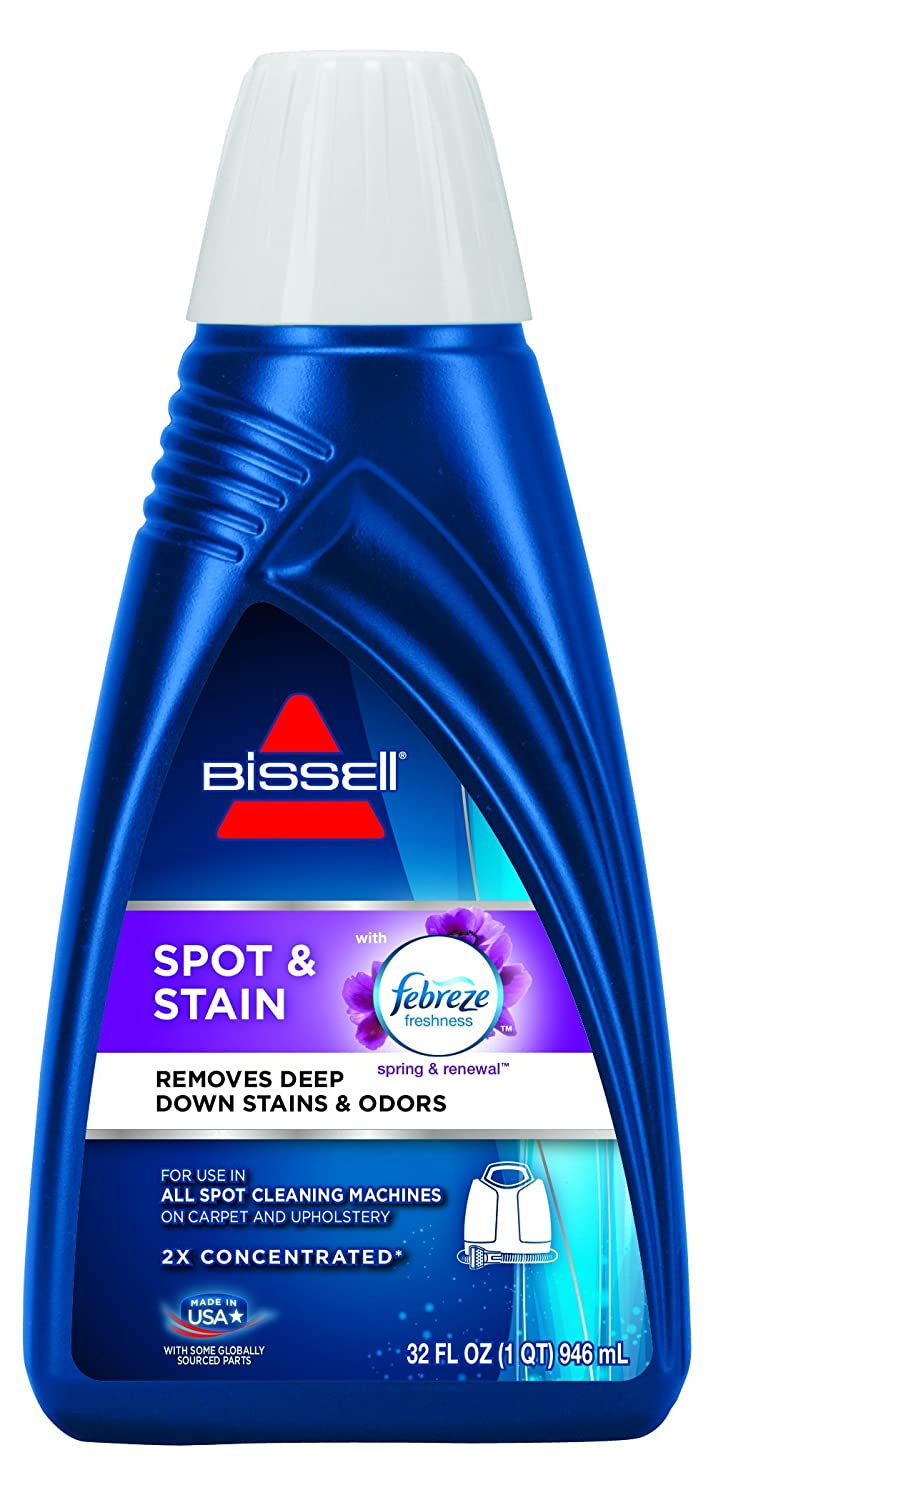 BISSELL Spot & Stain with Febreze Freshness Spring & Renewal Formula, 7149, 32 ounces